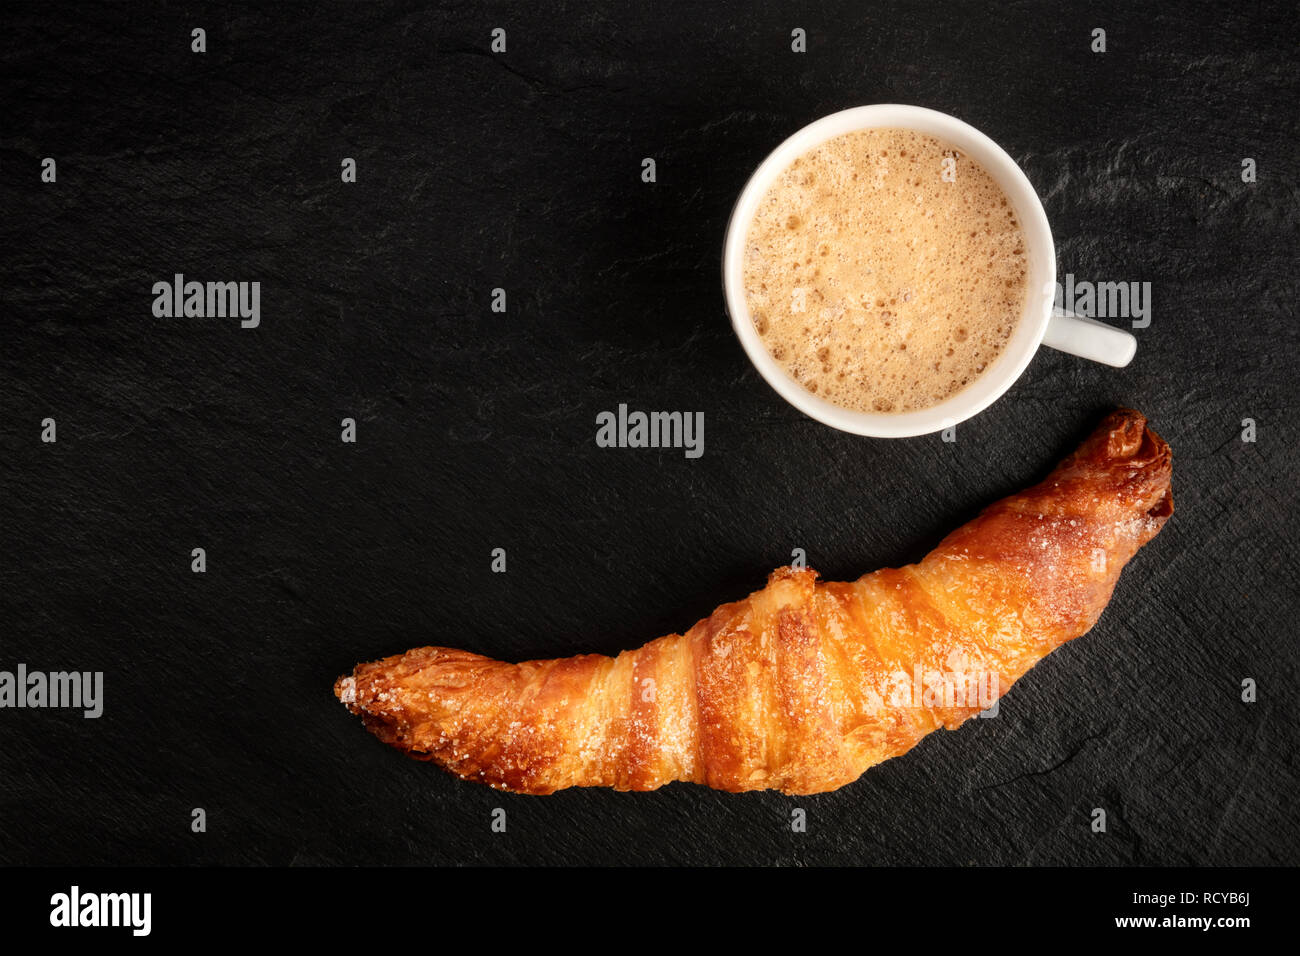 A photo of a croissant with a cup of coffee, shot from the top on a black background with a place for text - Stock Image